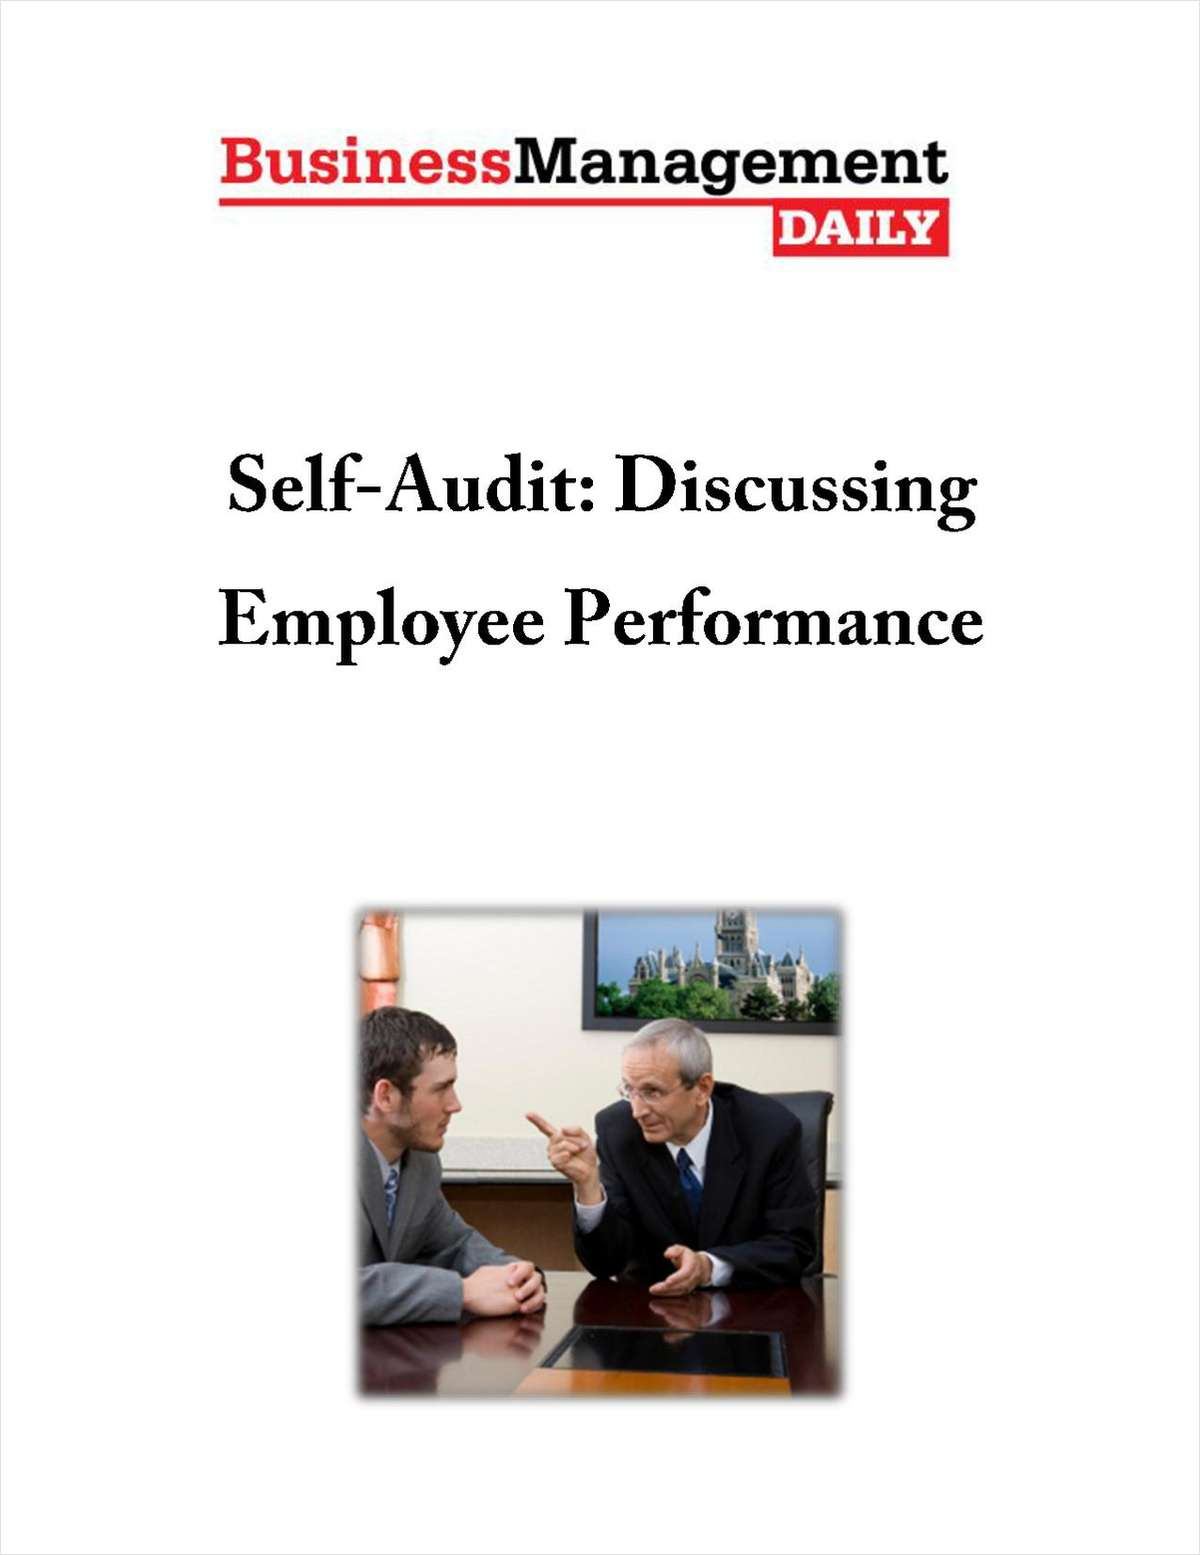 http://magz.tradepub.com/free-offer/self-audit-discussing-employee-performance/w_bush43?sr=hicat&_t=hicat:1206